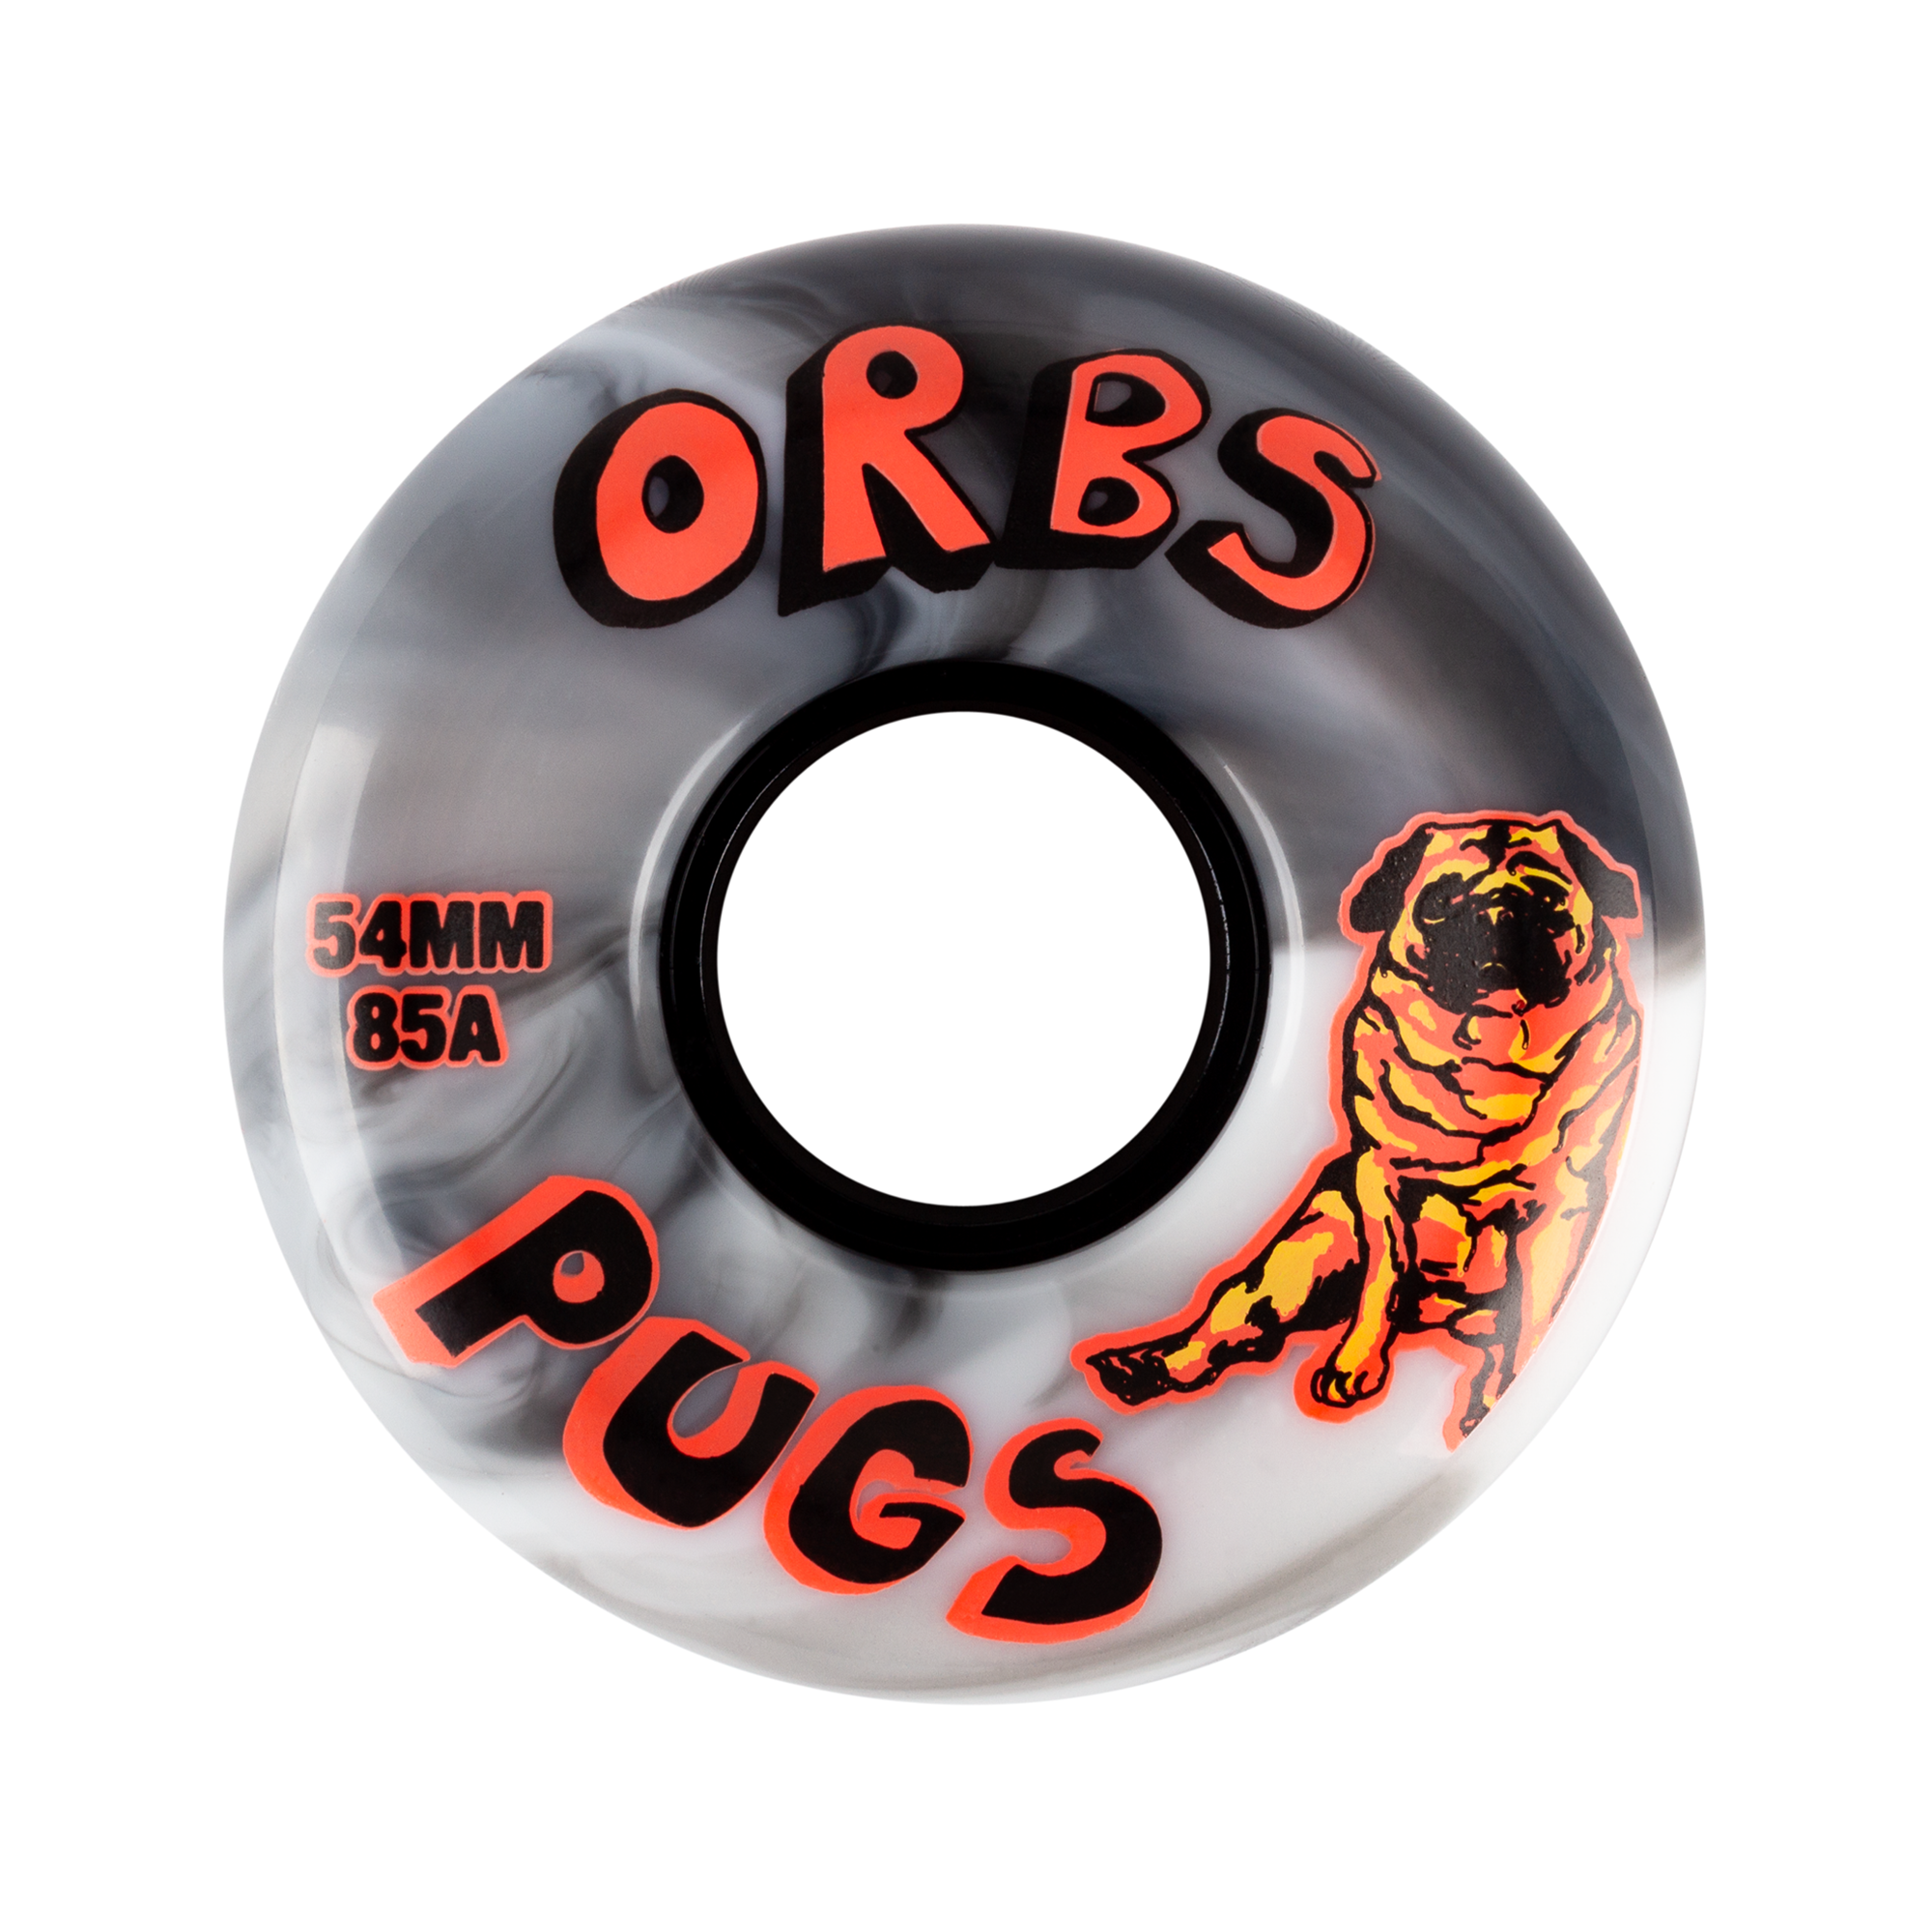 Welcome Orbs Pugs Wheels Product Photo #1